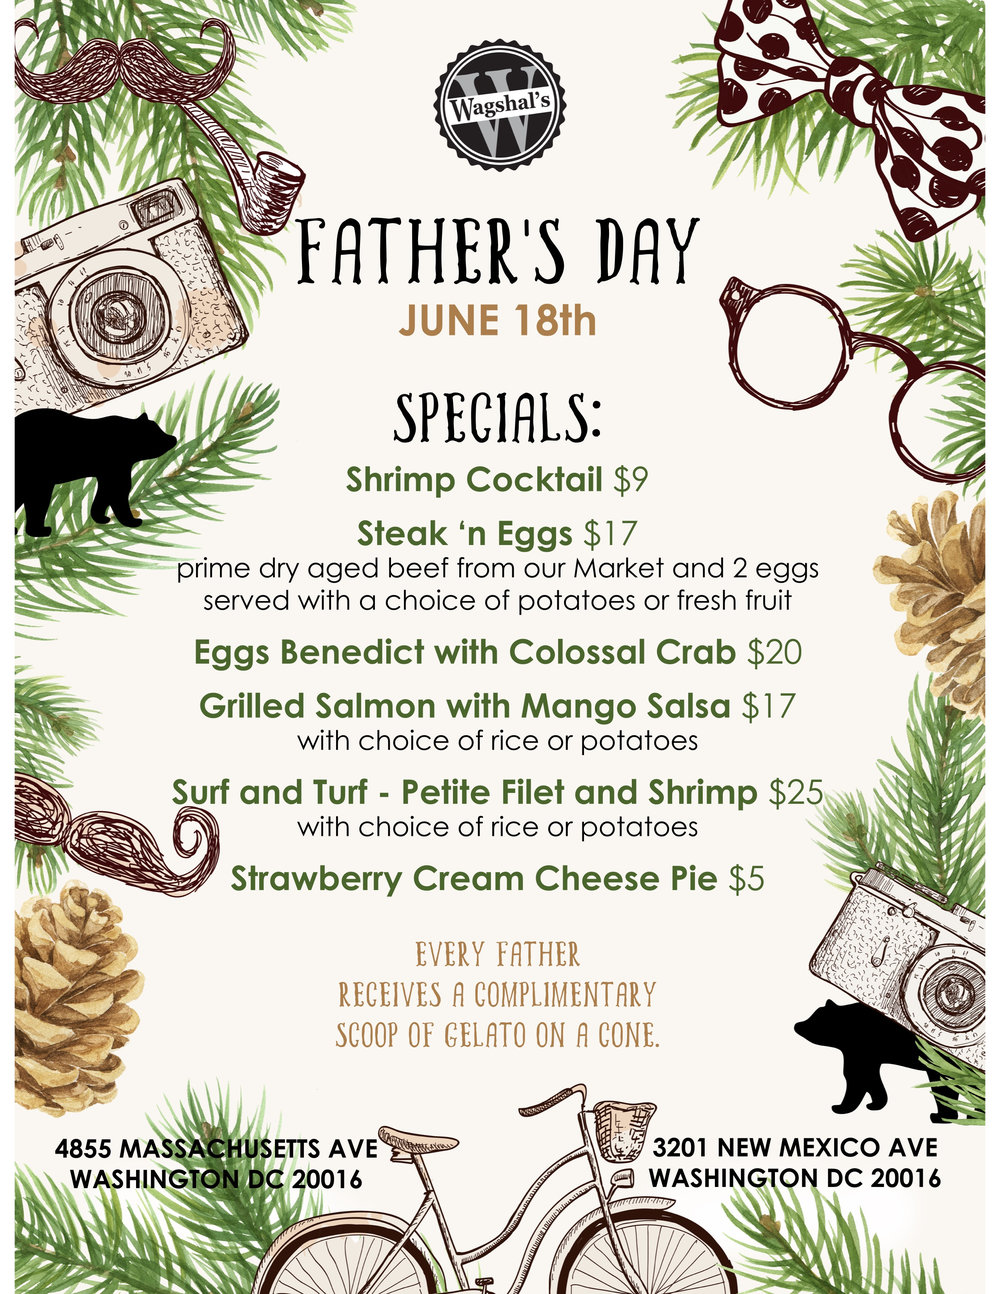 Treat Dad to brunch & gelato! -